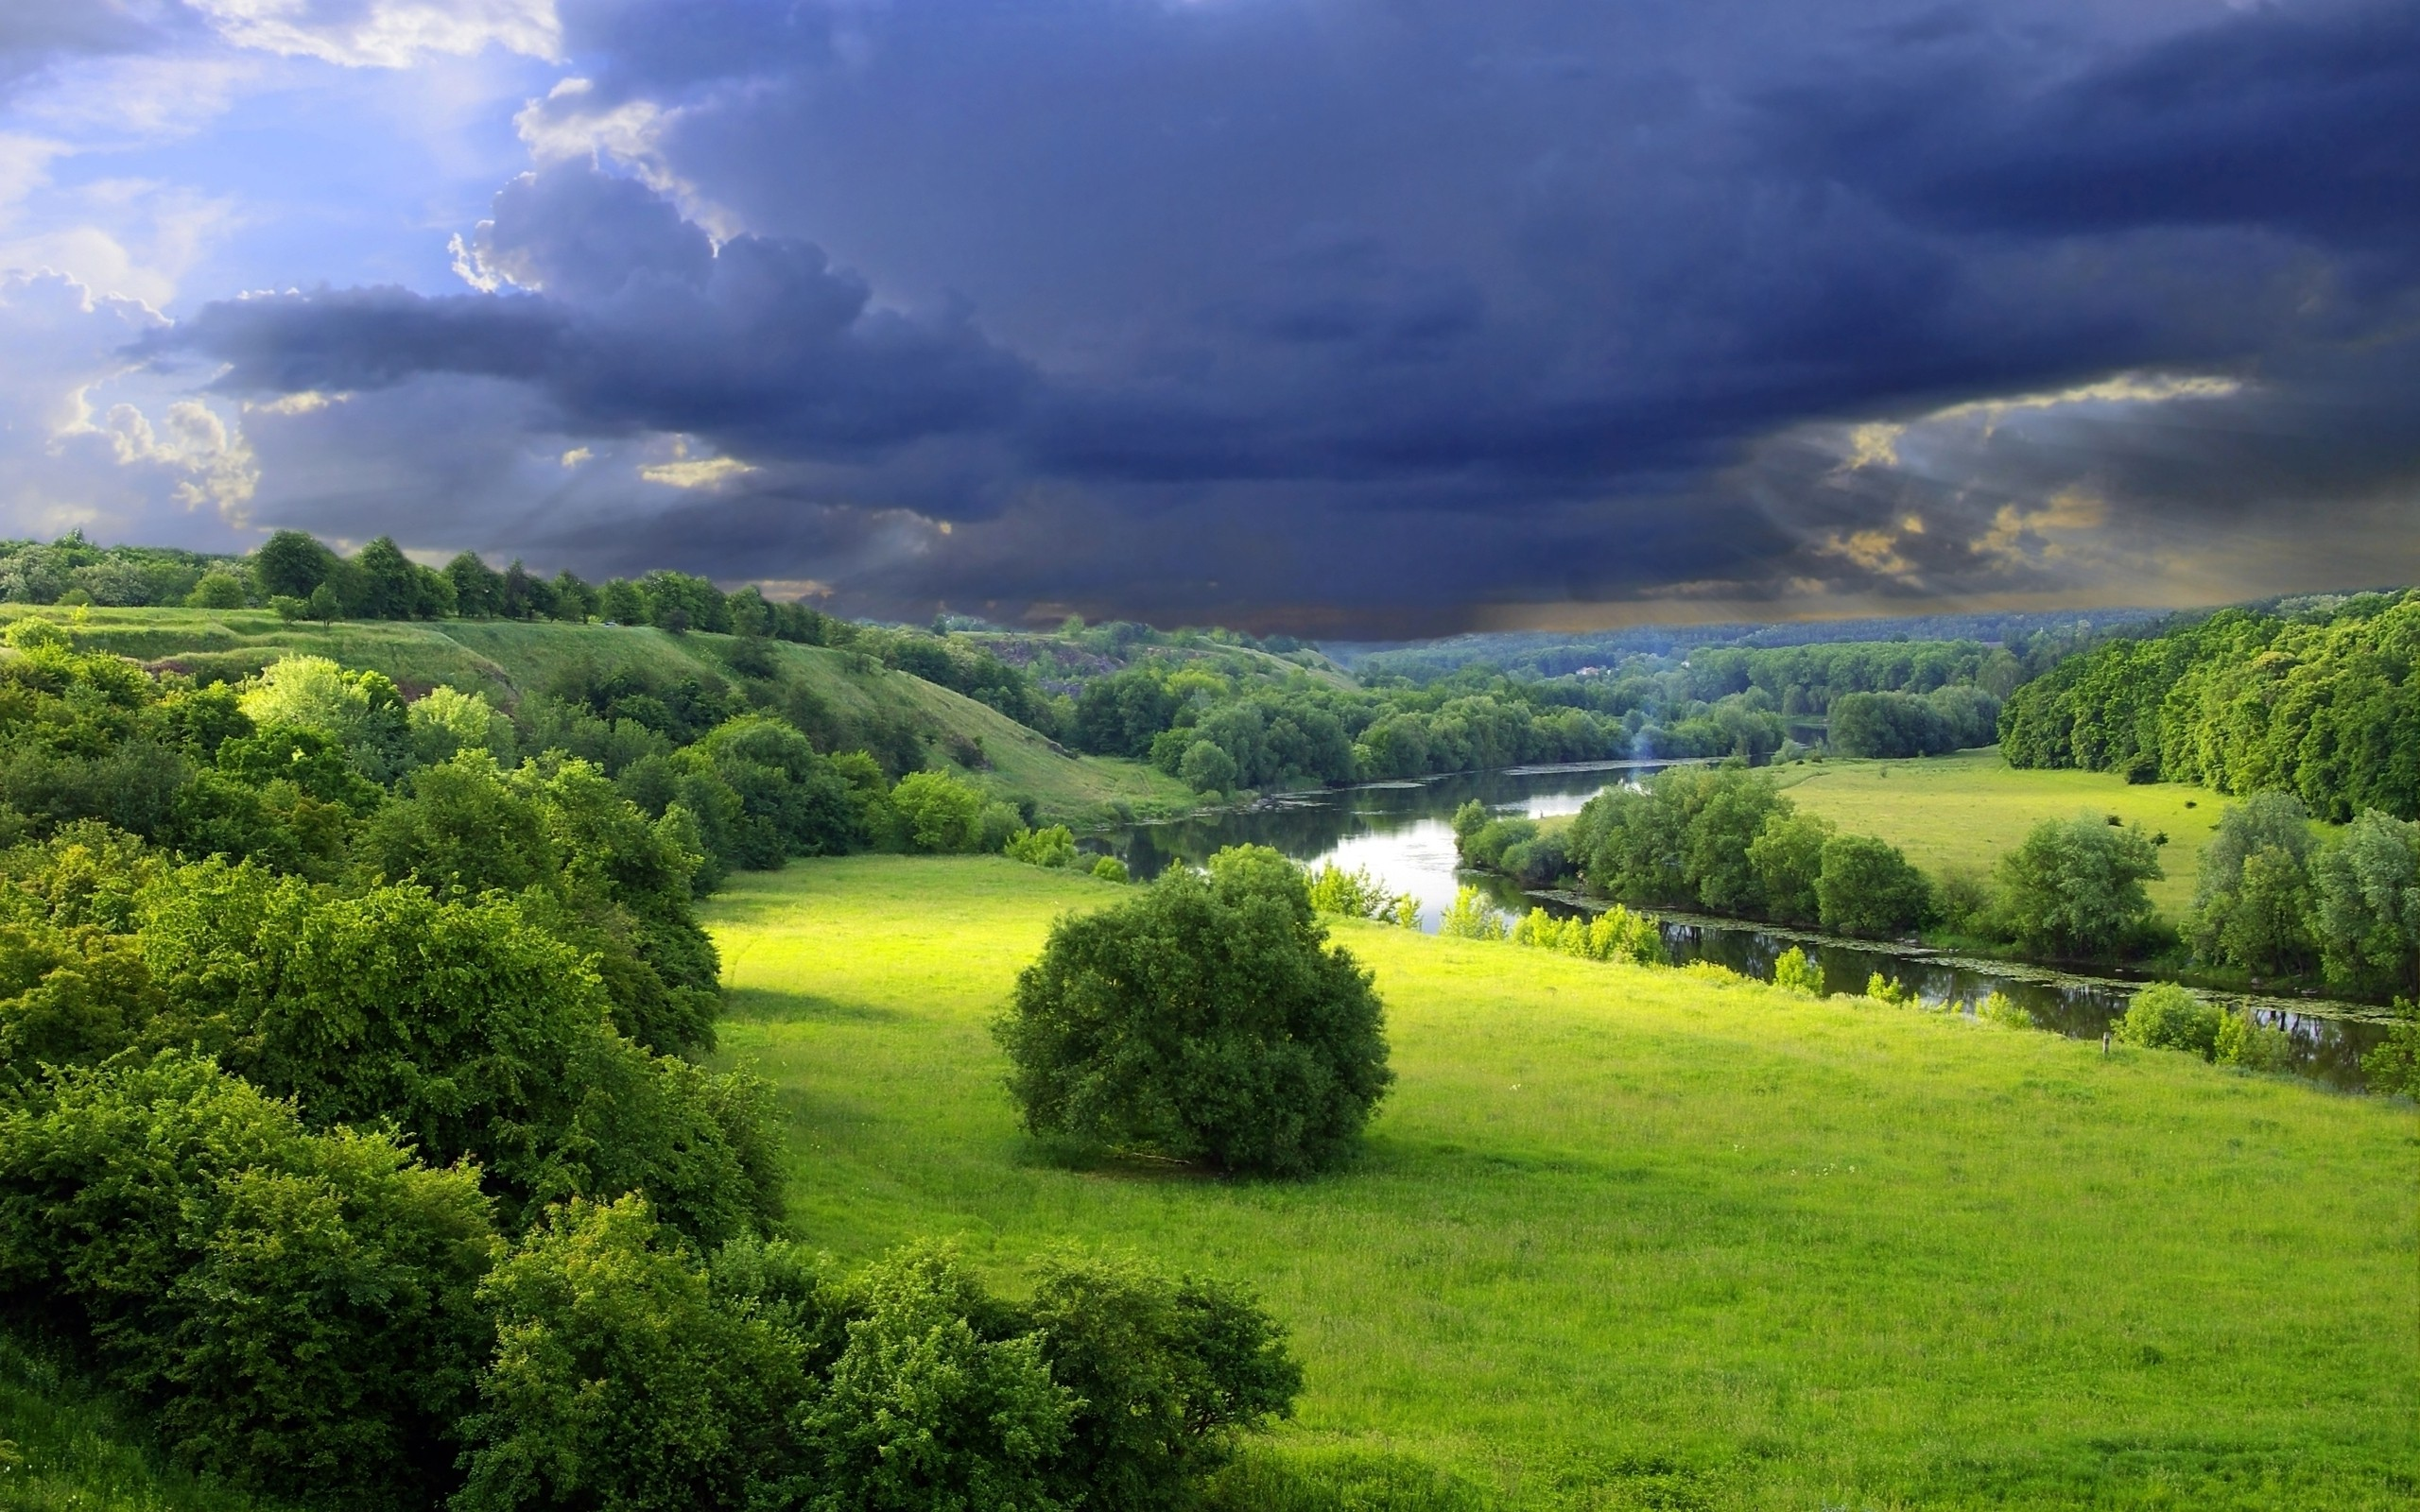 Clouds landscapes nature gray bushes gloomy sky wallpaper - Nature wallpaper 2560x1600 ...